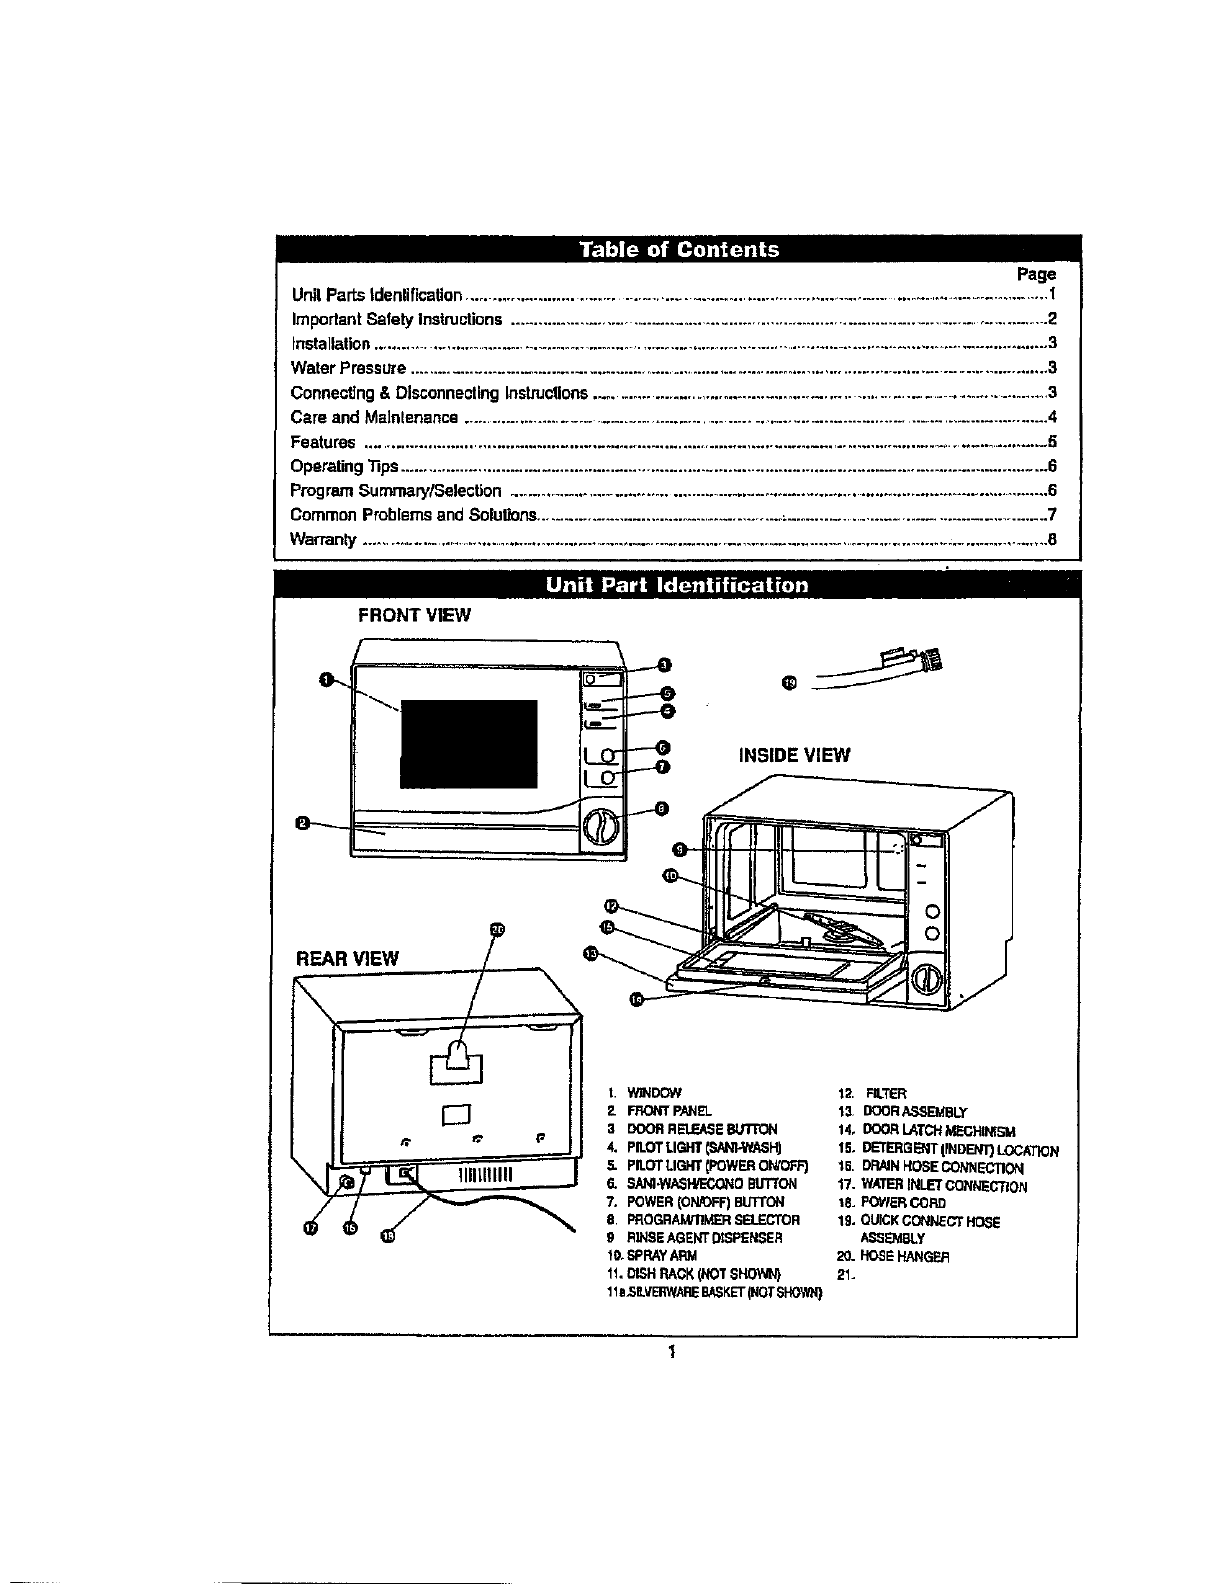 Danby Dishwasher Wiring Diagram Trusted Schematics Kenmore Ddw399w User Manual Manuals And Guides L0801093